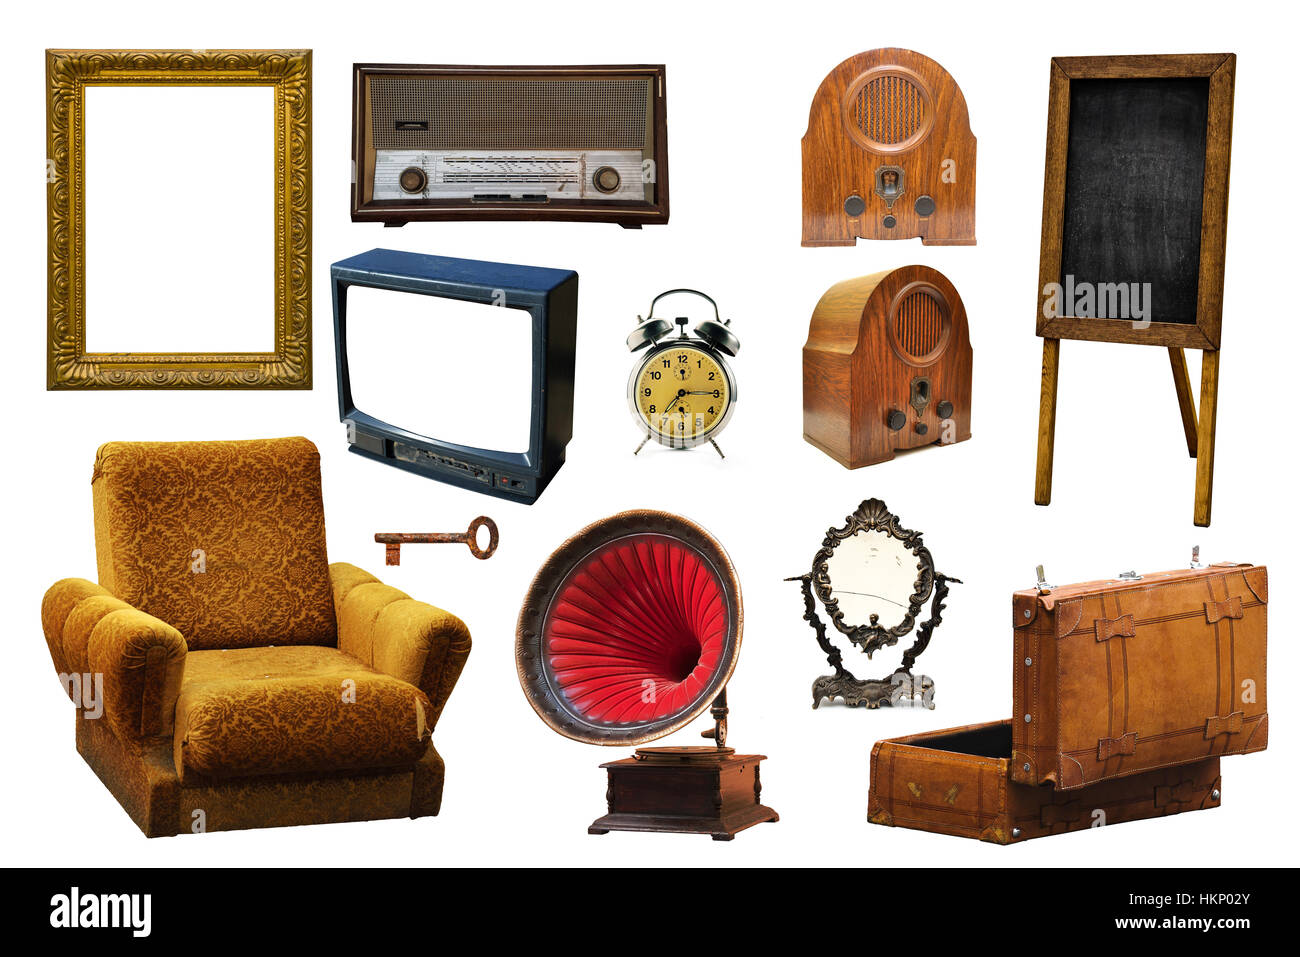 Collection of vintage retro home related objects isolated on white background - picture frame, radio device, armchair, - Stock Image